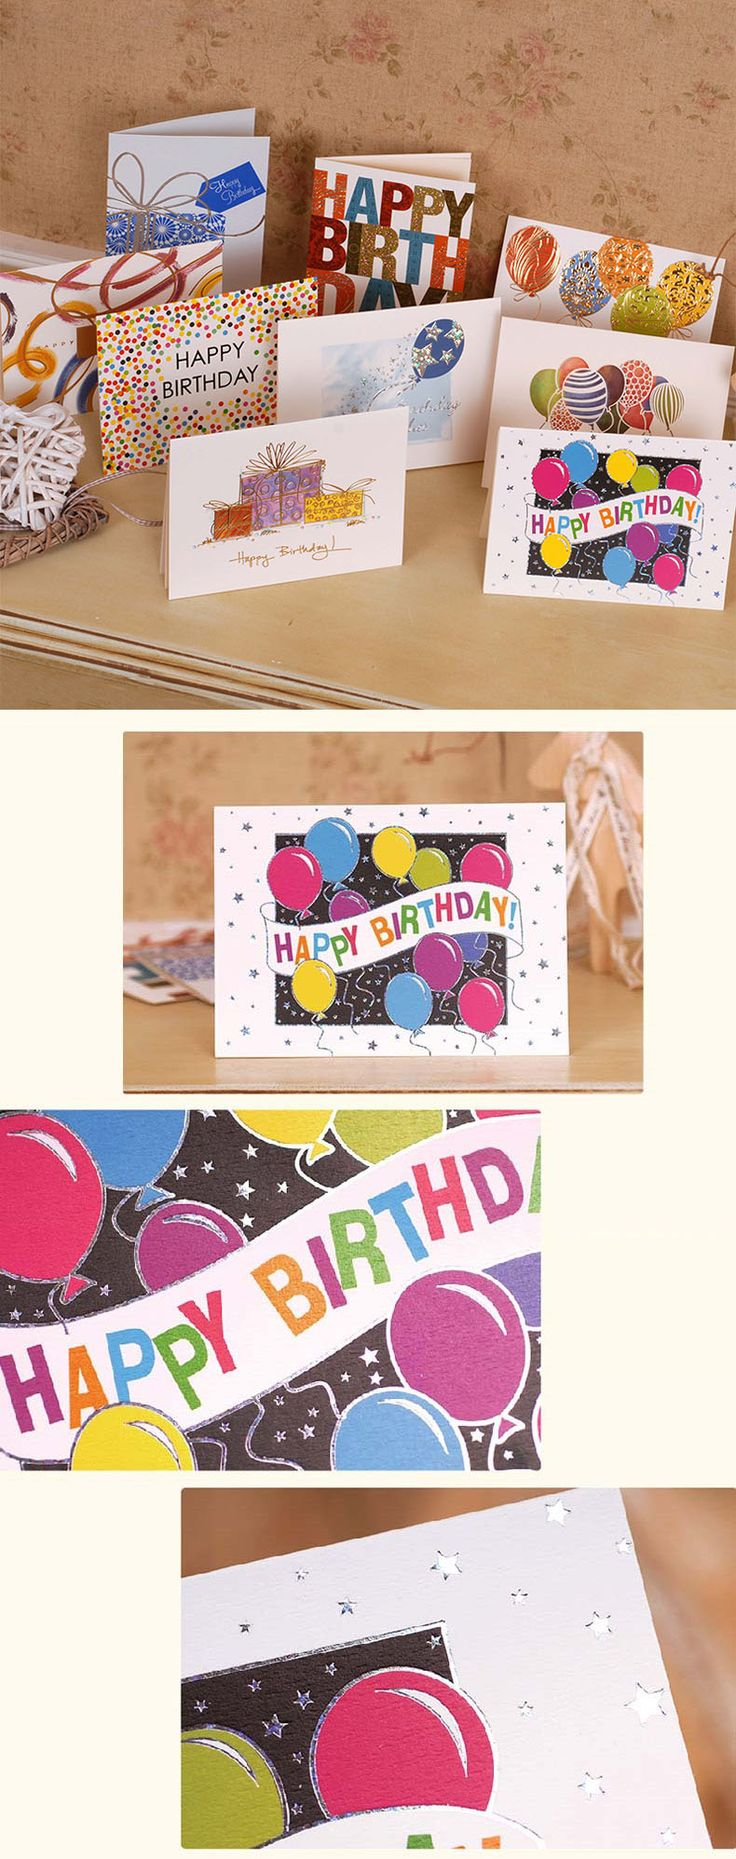 The 39 Best Paper Card Idea Images On Pinterest Card Ideas